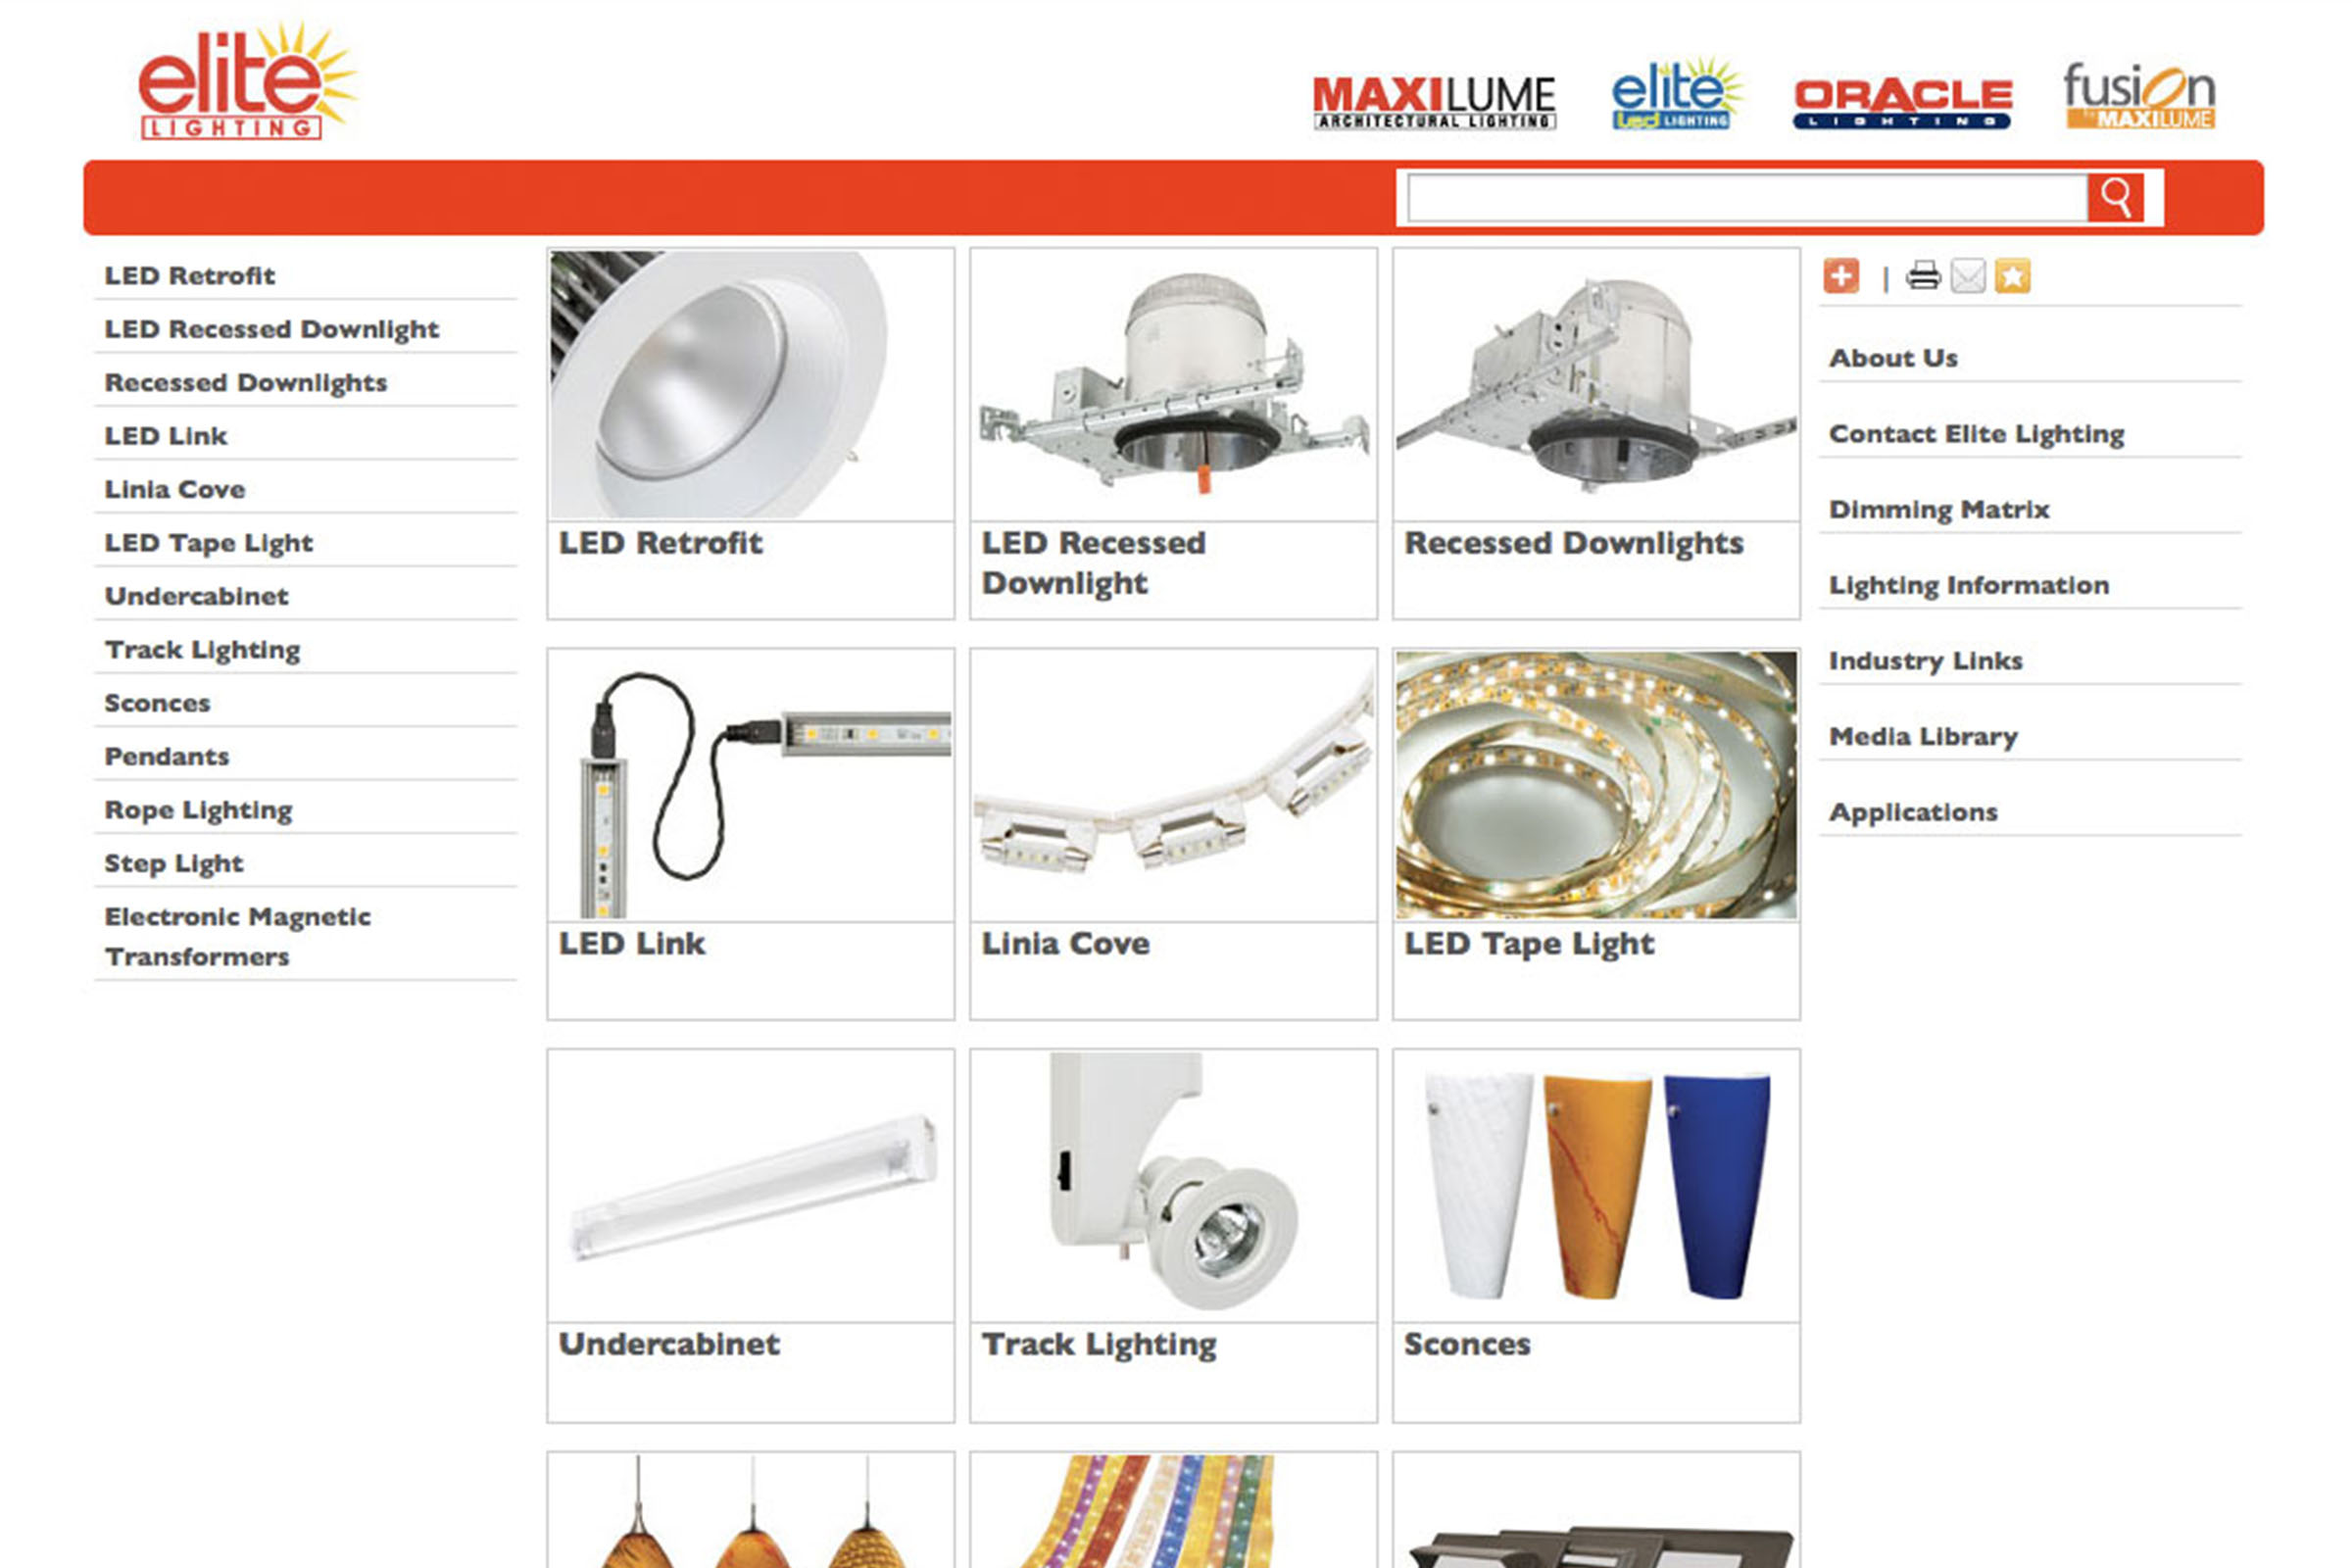 Elite Lighting Websites